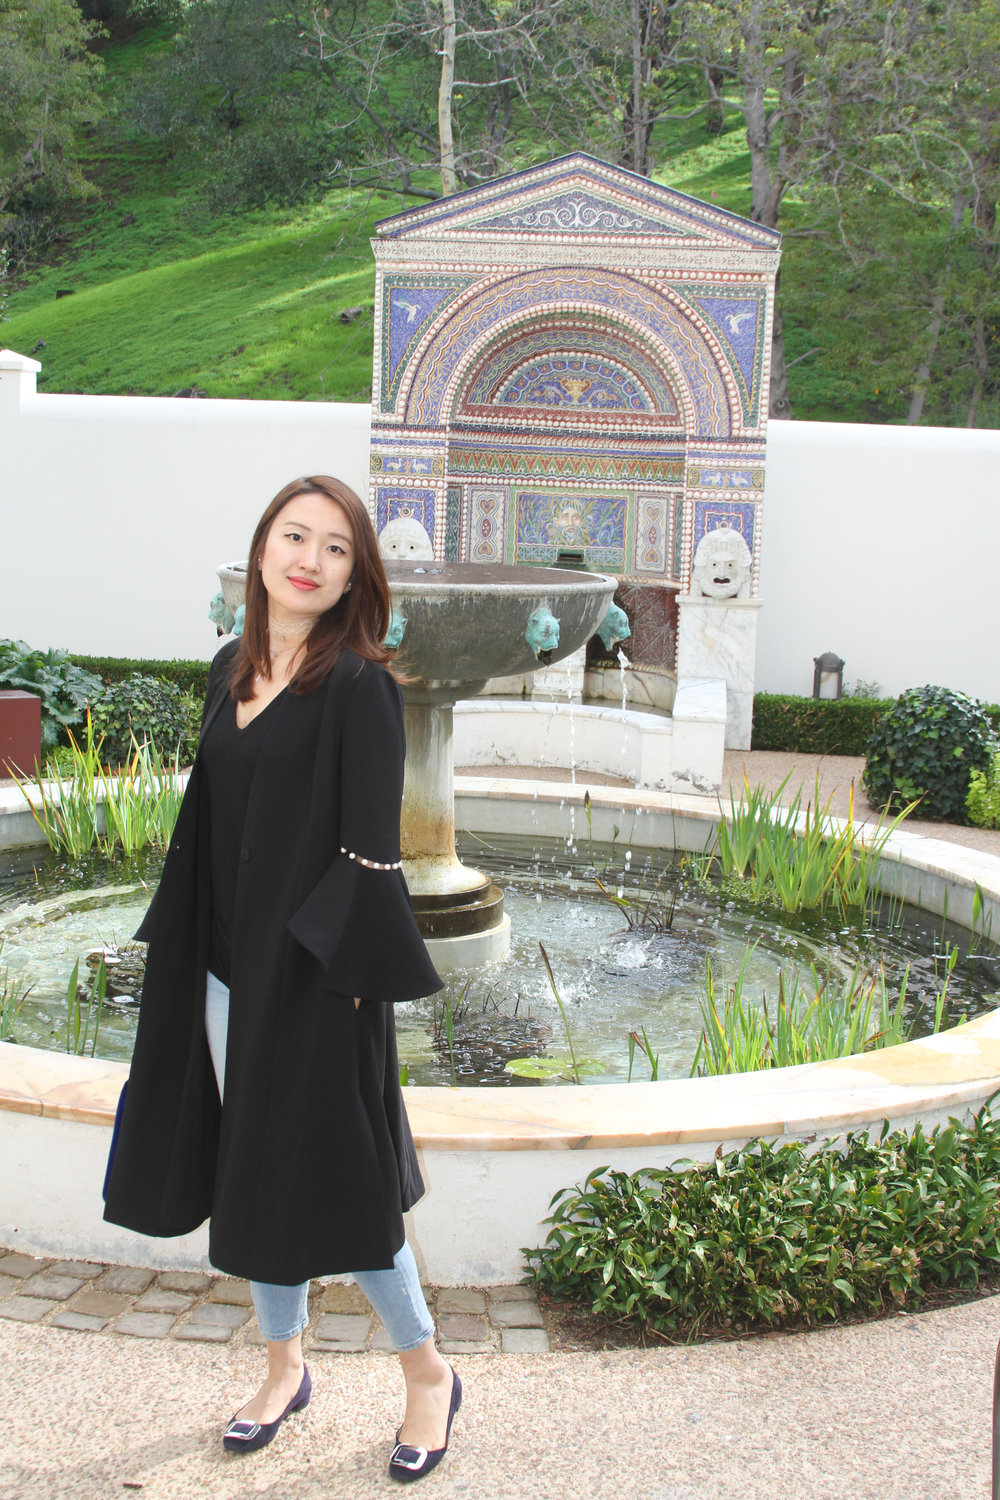 june lemon girl, junelemongirl, new york fashion, new york fashion blogger, bell sleeve, pearl sleeve, dress coat, black tee, spring street fashion, lace choker necklace, getty villa, getty museum, los angeles, spring fashion, ootd, fountain, fashion blogger